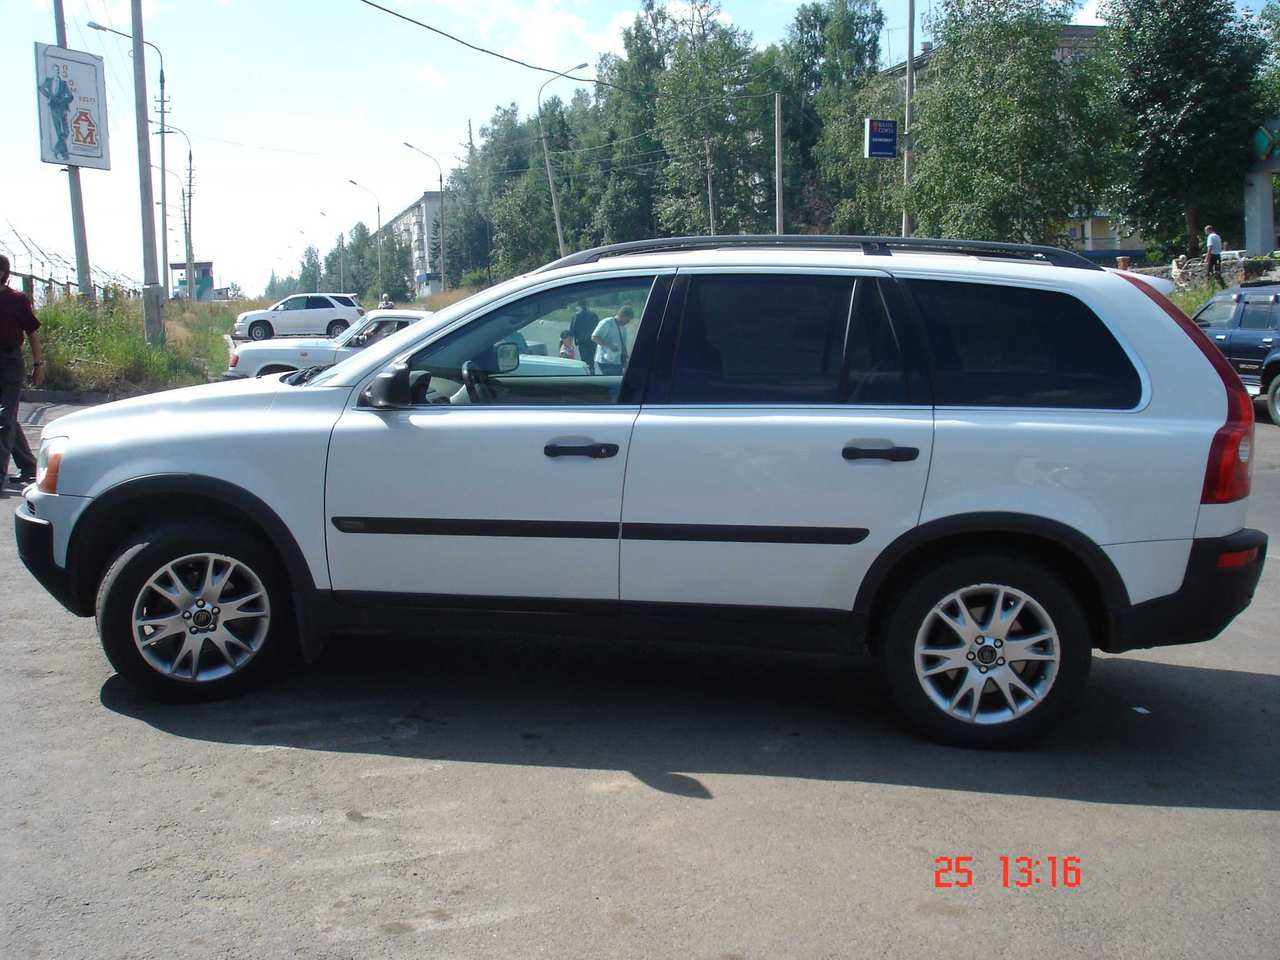 used 2003 volvo xc90 photos gasoline for sale. Black Bedroom Furniture Sets. Home Design Ideas